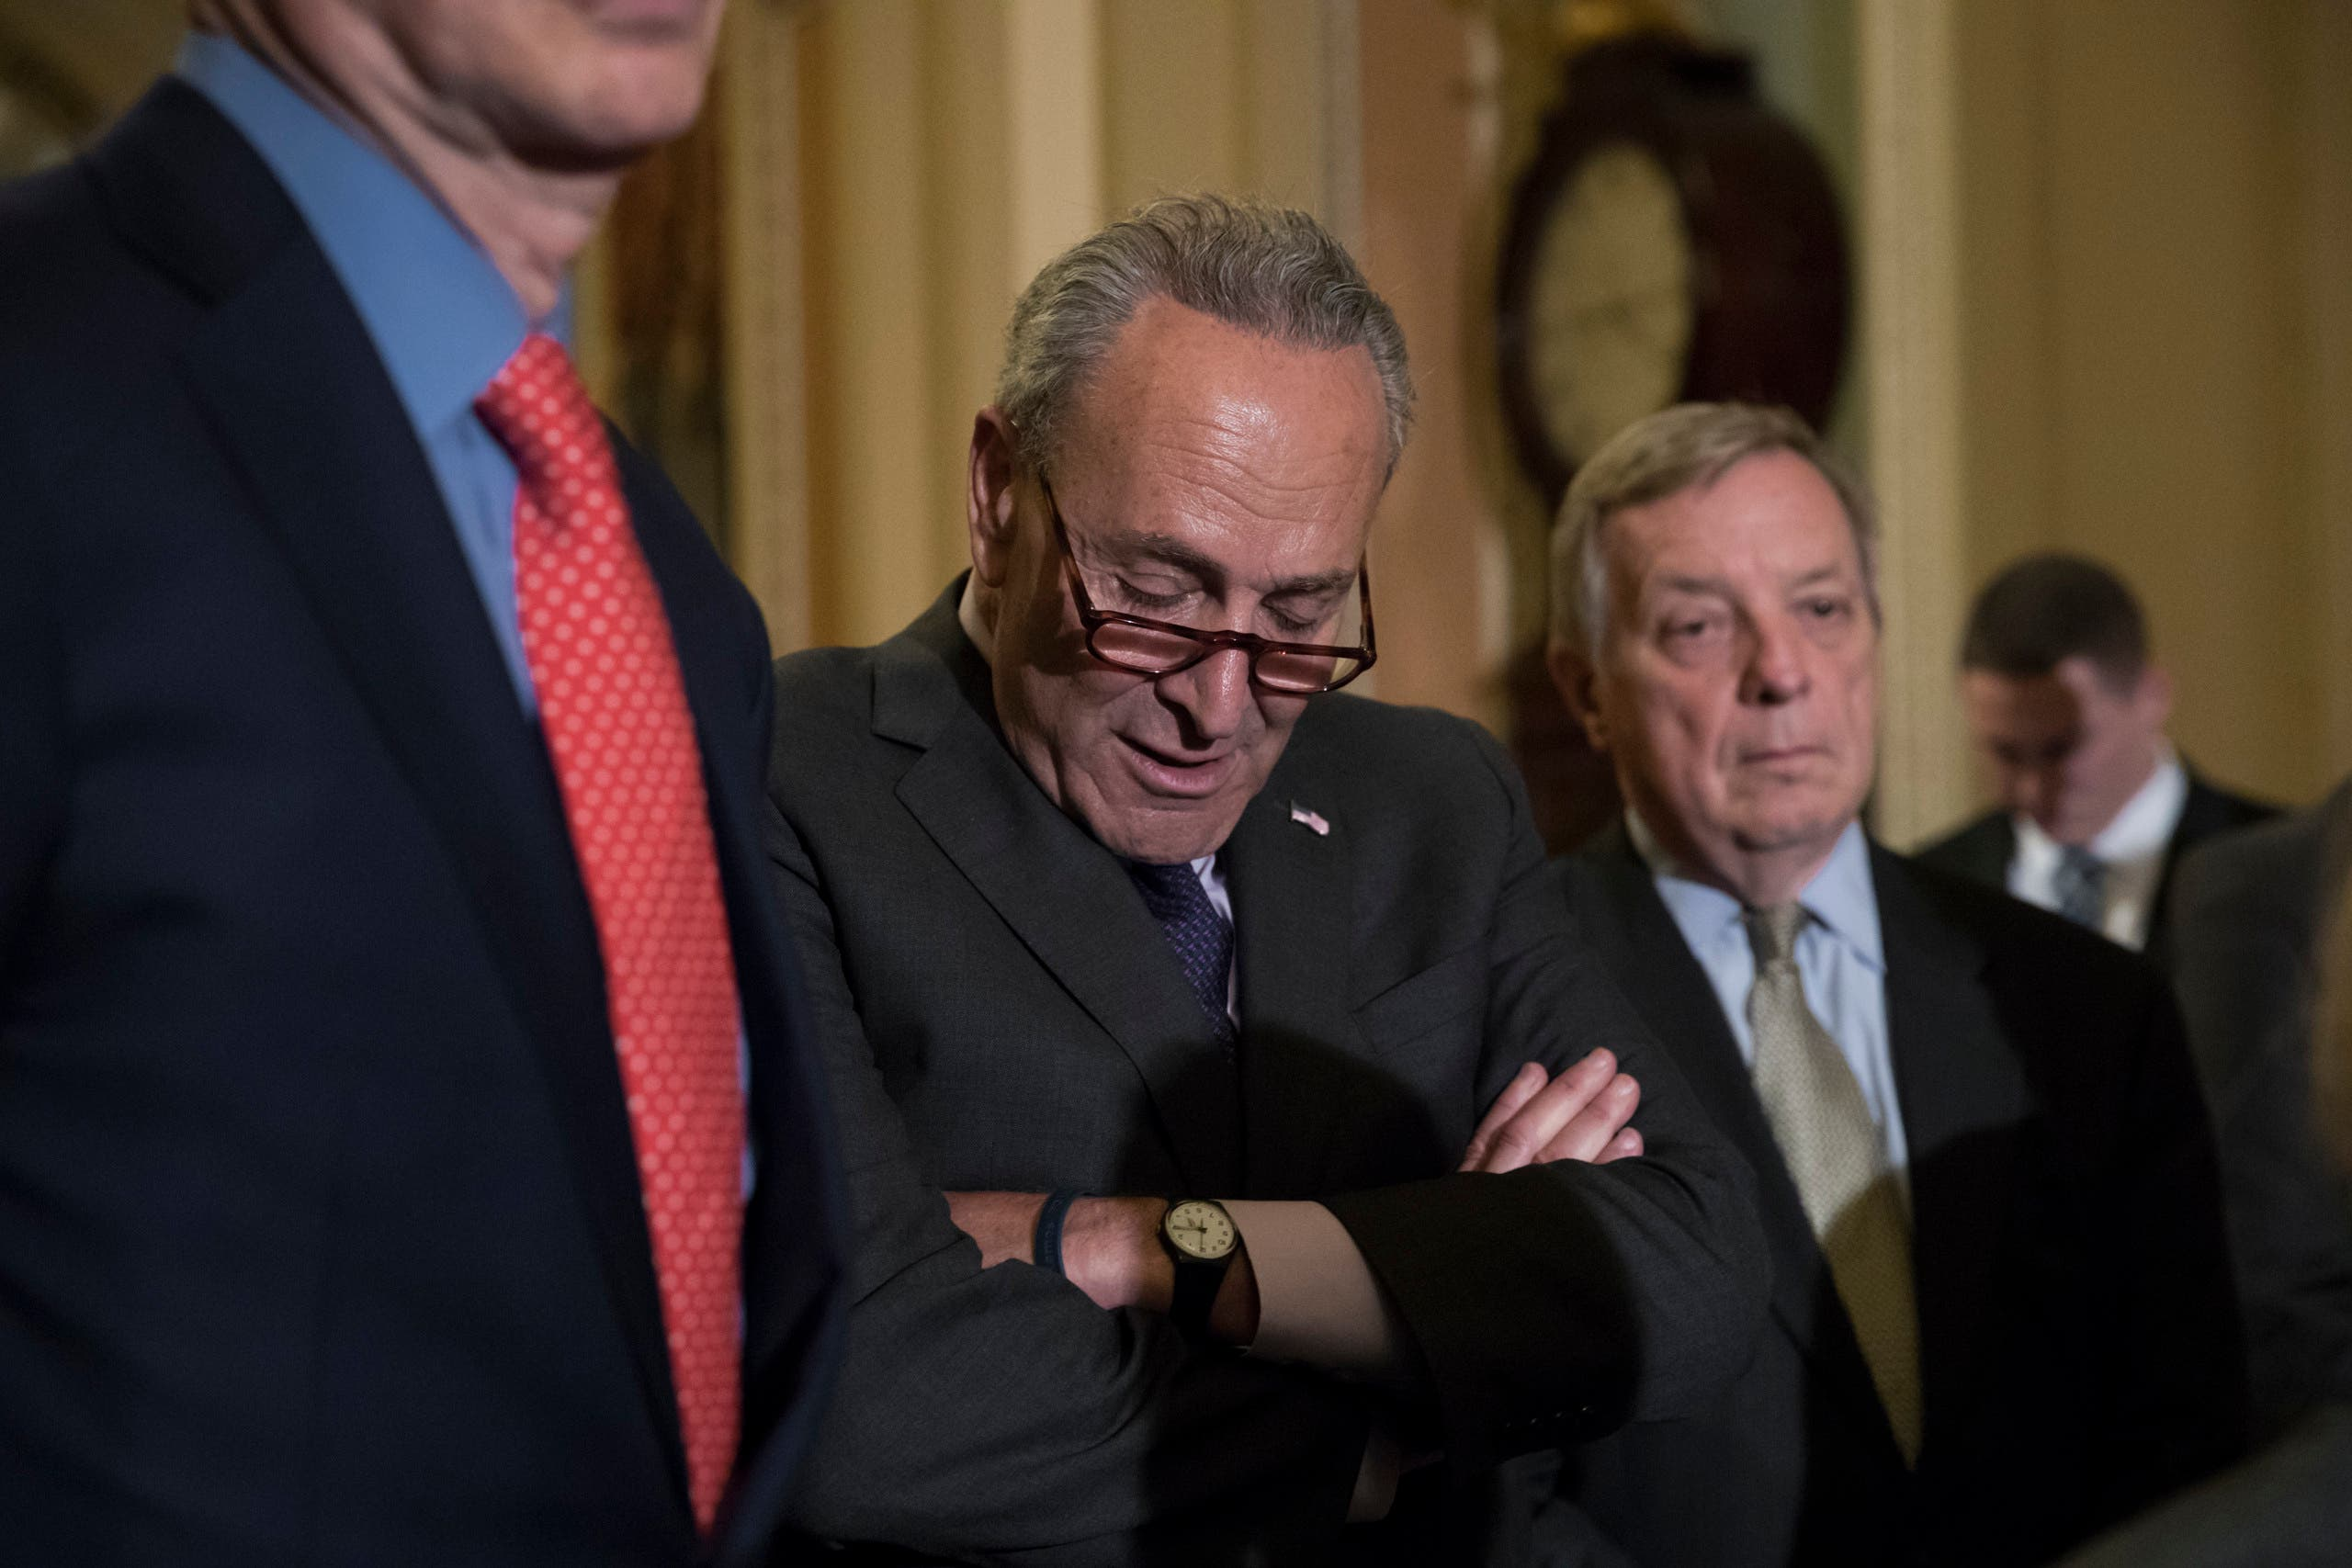 Senate Minority Leader Chuck Schumer pauses as he speaks with reporters on Capitol Hill in Washington on July 25, 2017. (AP)